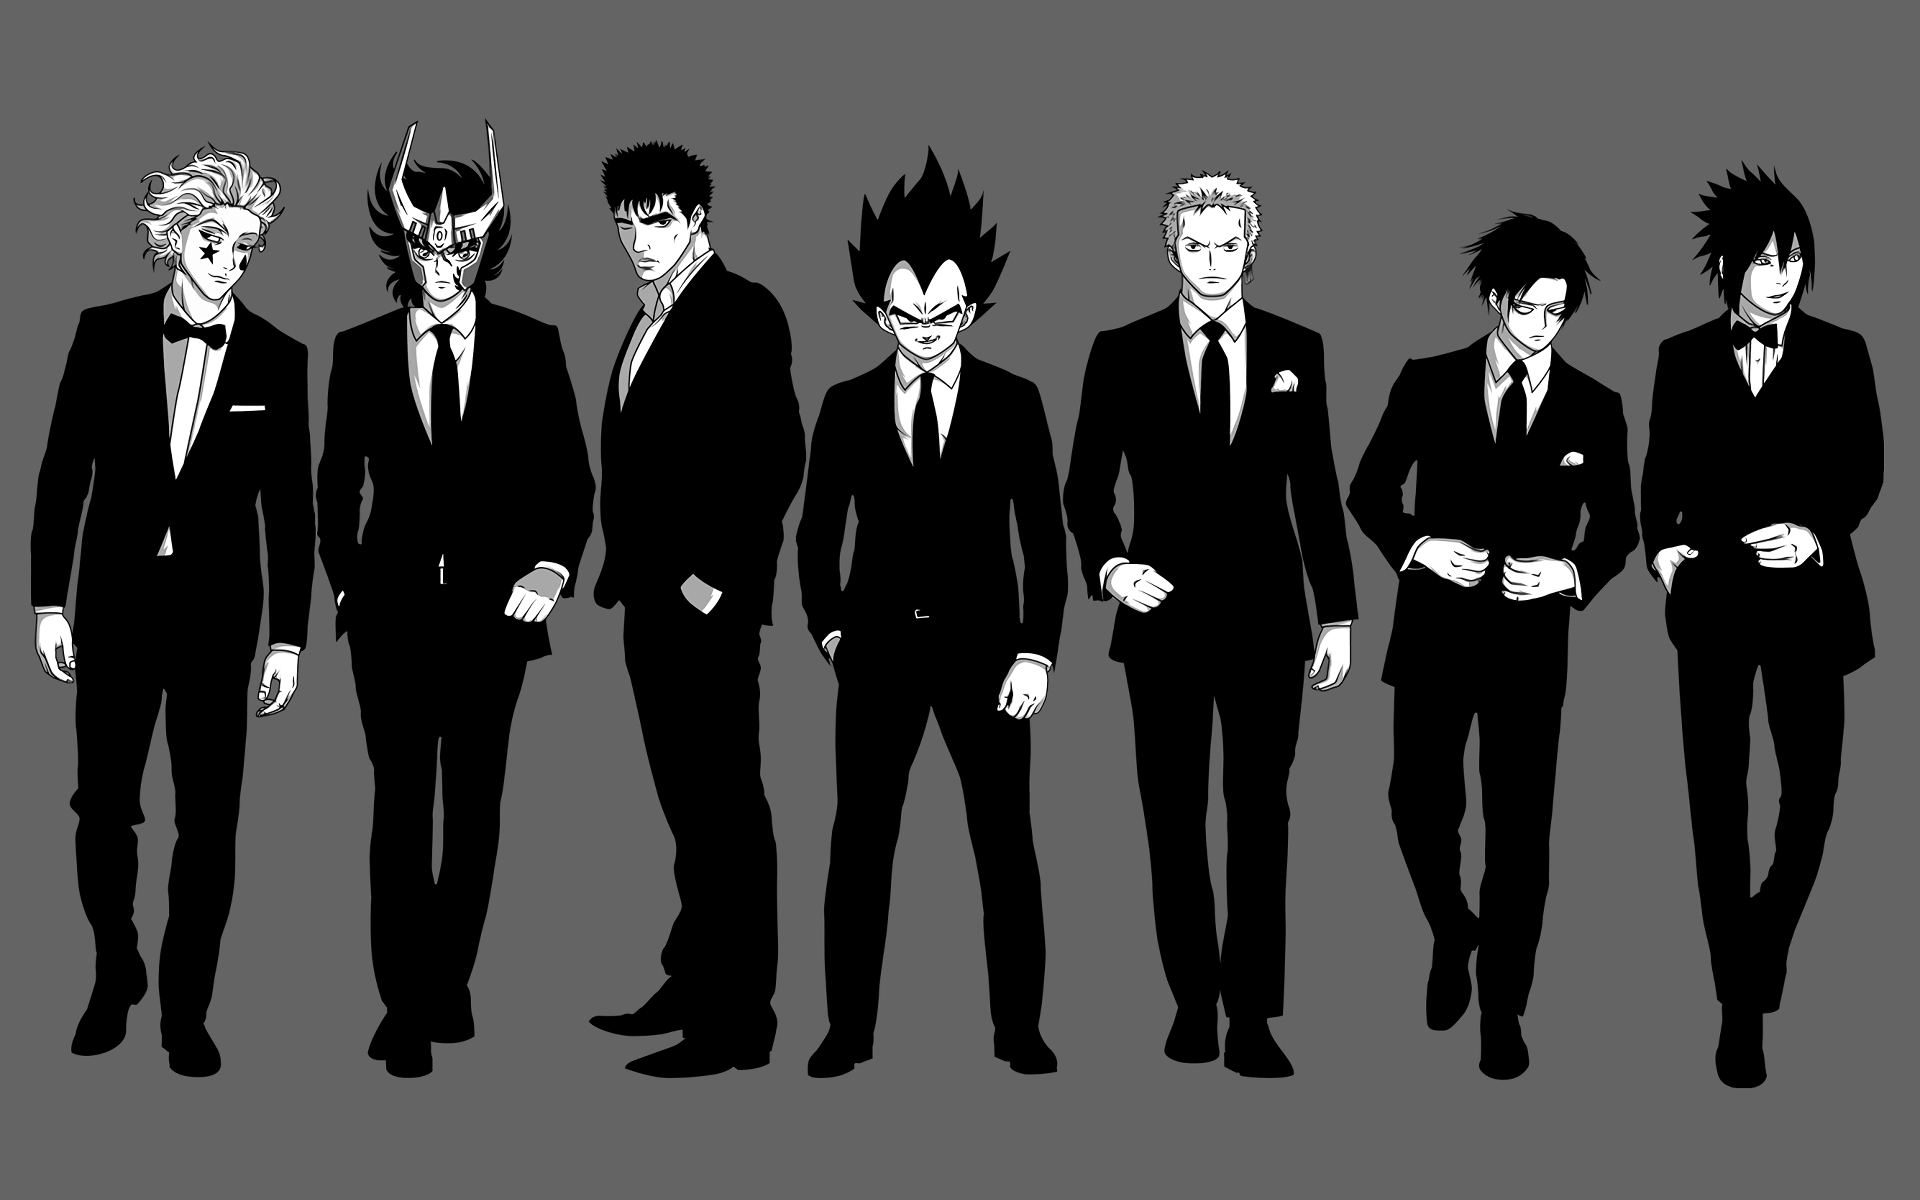 Anime - Crossover  Sasuke Uchiha Levi Ackerman Zoro Roronoa Vegeta (Dragon Ball) Hisoka (Hunter × Hunter) Naruto Attack on Titan Shingeki No Kyojin Dragon Ball One Piece Berserk Guts (Berserk) Saint Seiya Hunter x Hunter Wallpaper